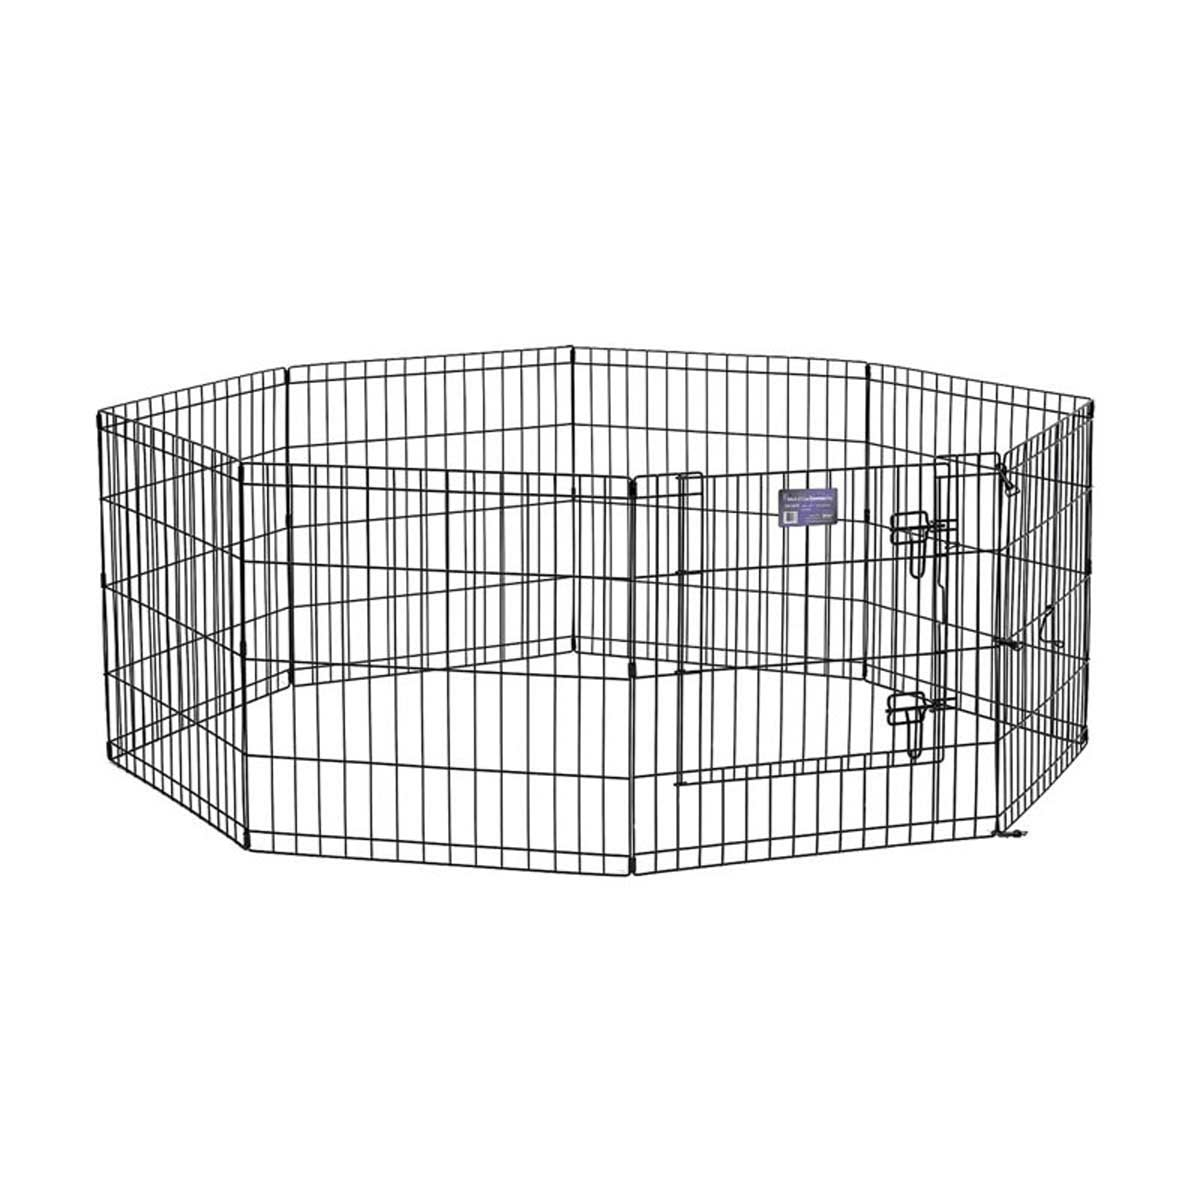 Midwest Step-Thru Exercise Pen for Pets With Door - 24 inches by 24 inches